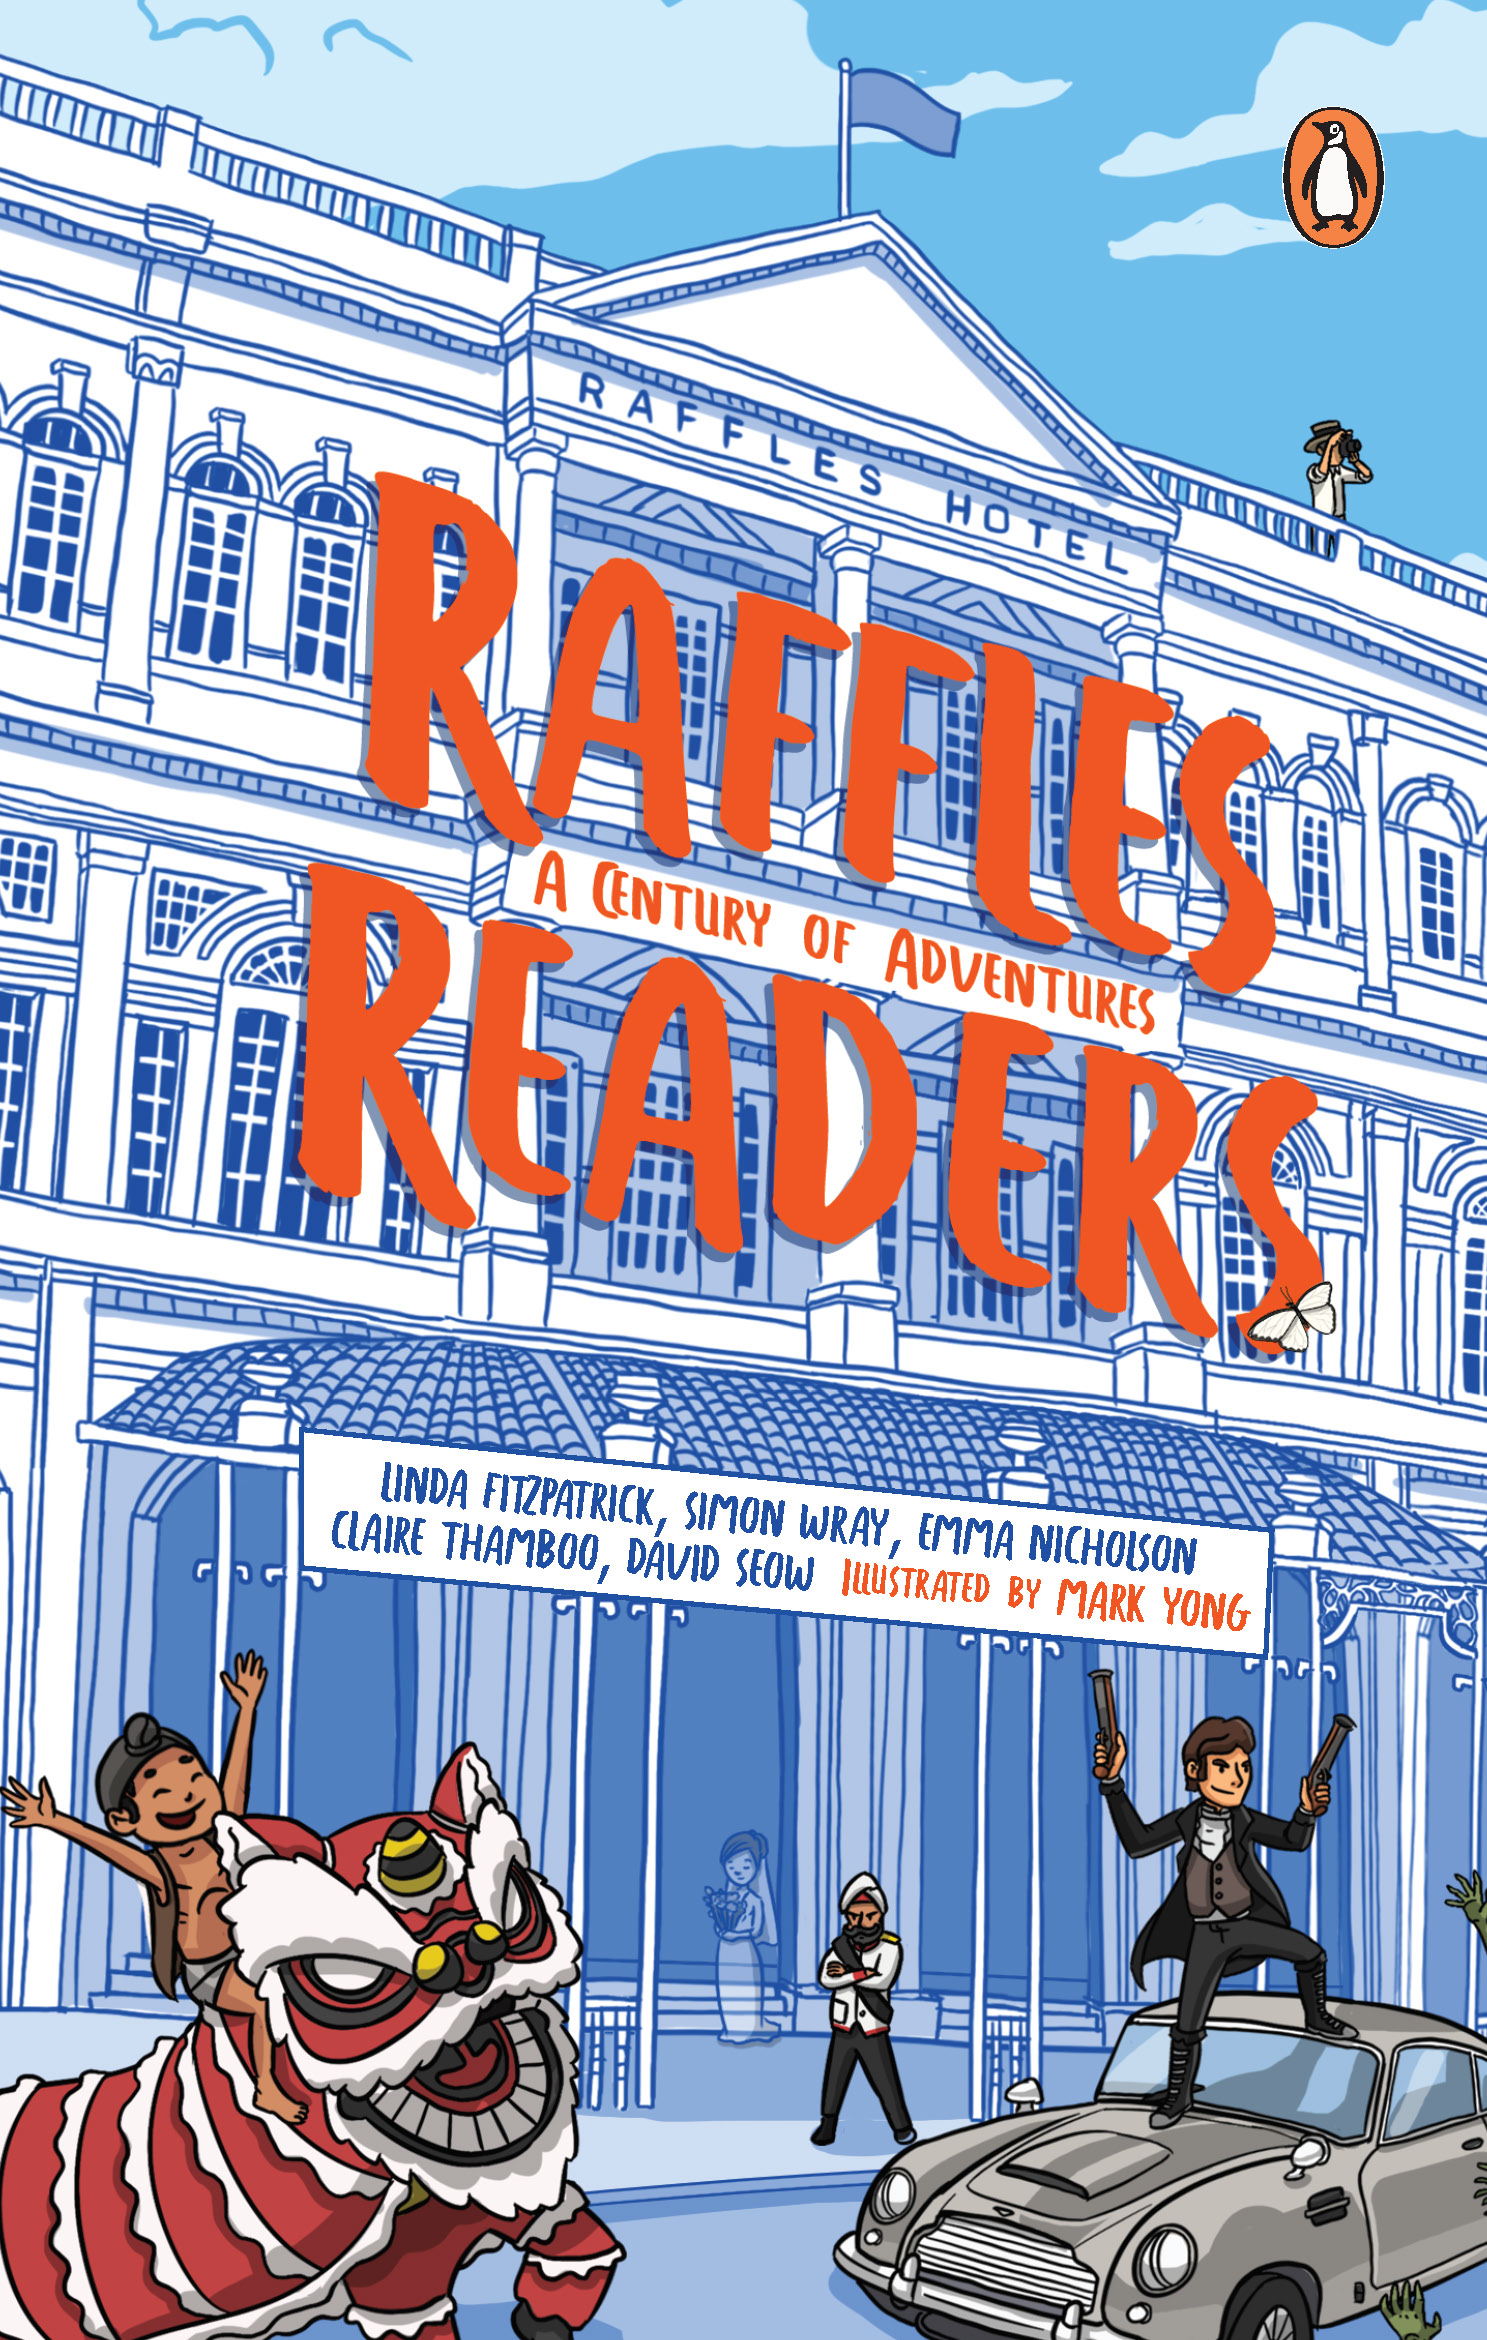 Raffles Readers: A century of adventures